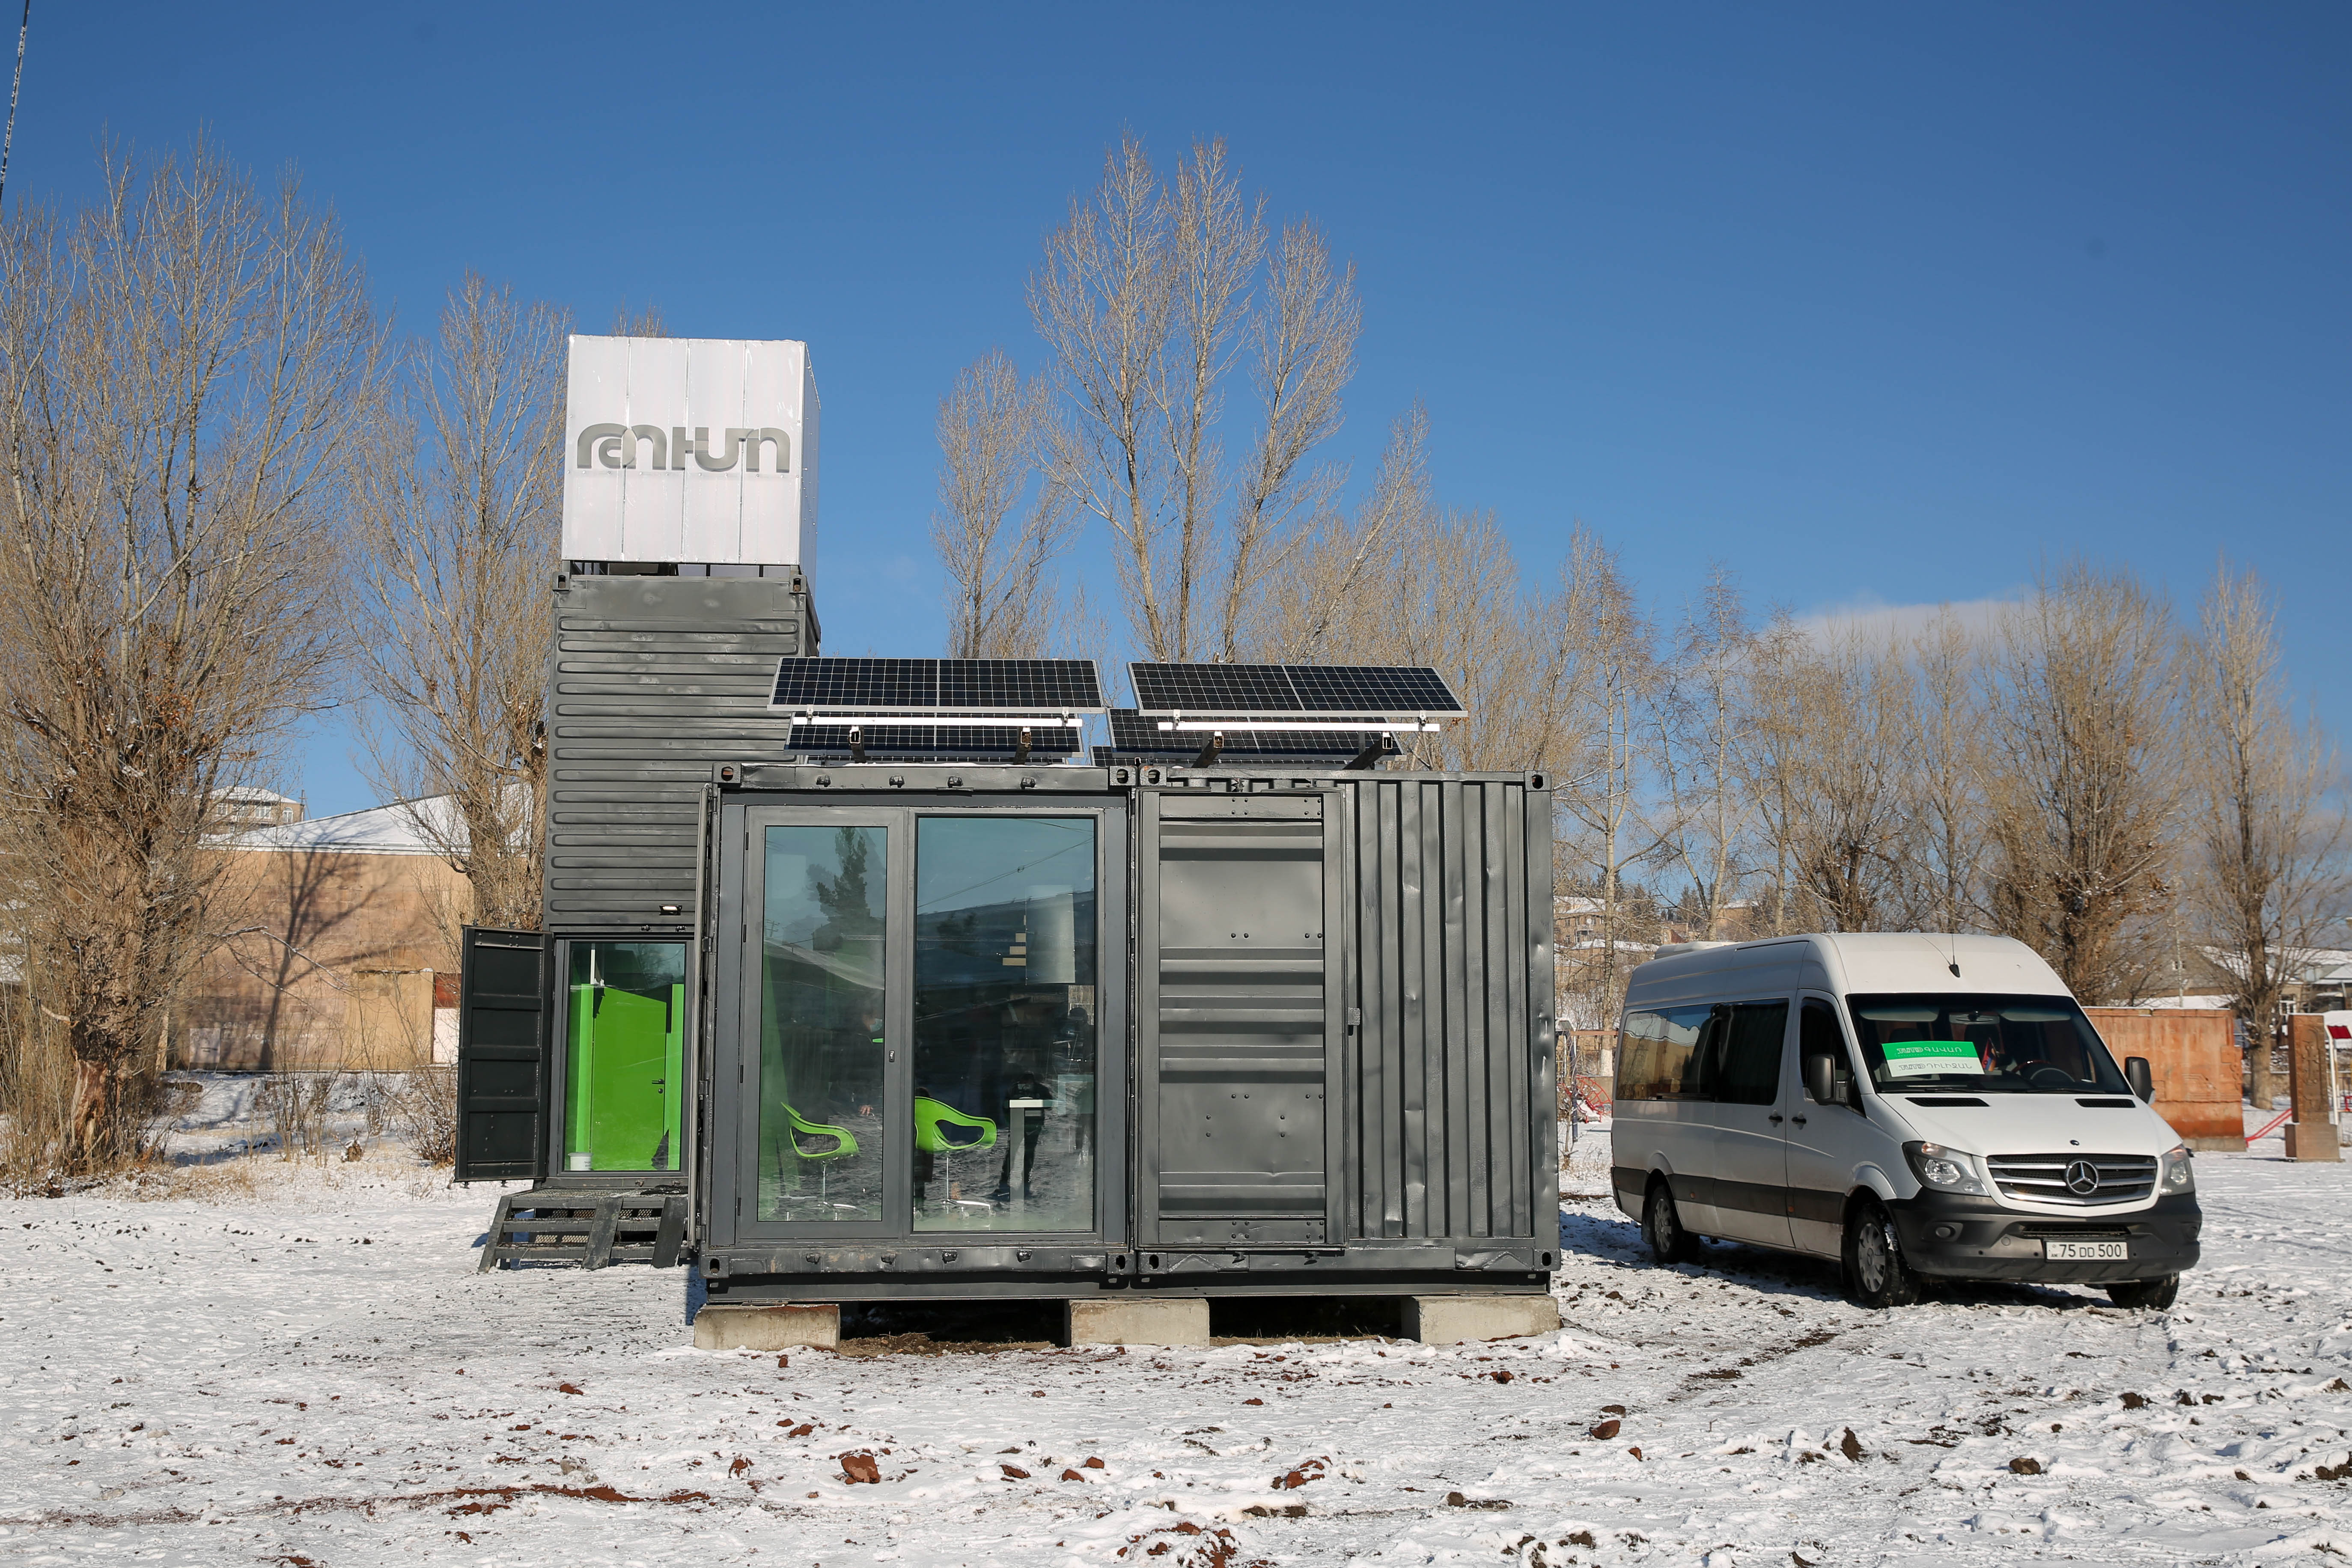 img 8663 - The First TUMO Box Has Opened in Gavar